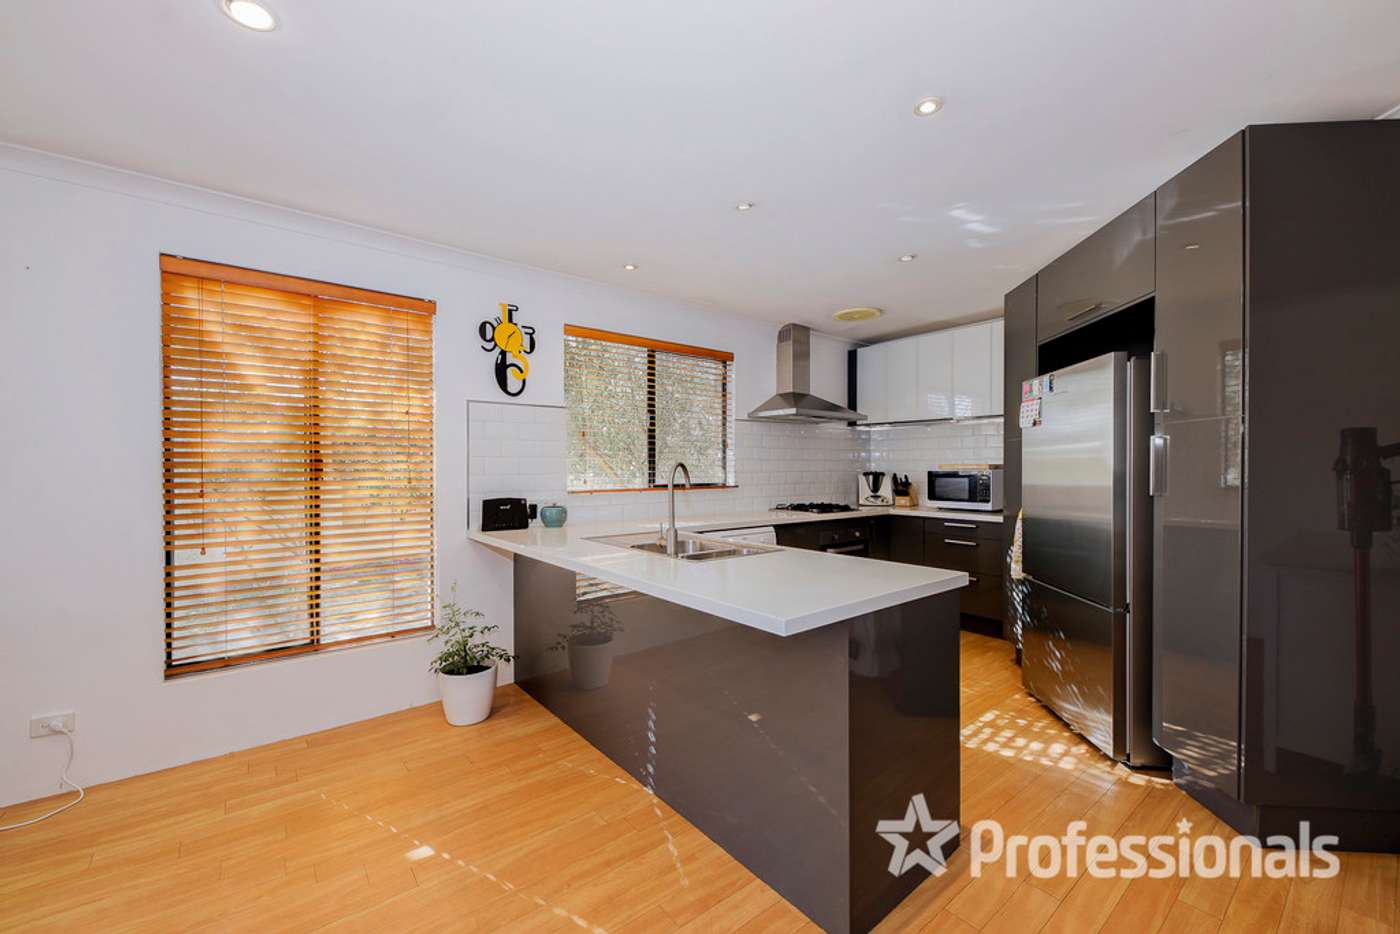 Sixth view of Homely house listing, 17 Valinco Avenue, Ellenbrook WA 6069